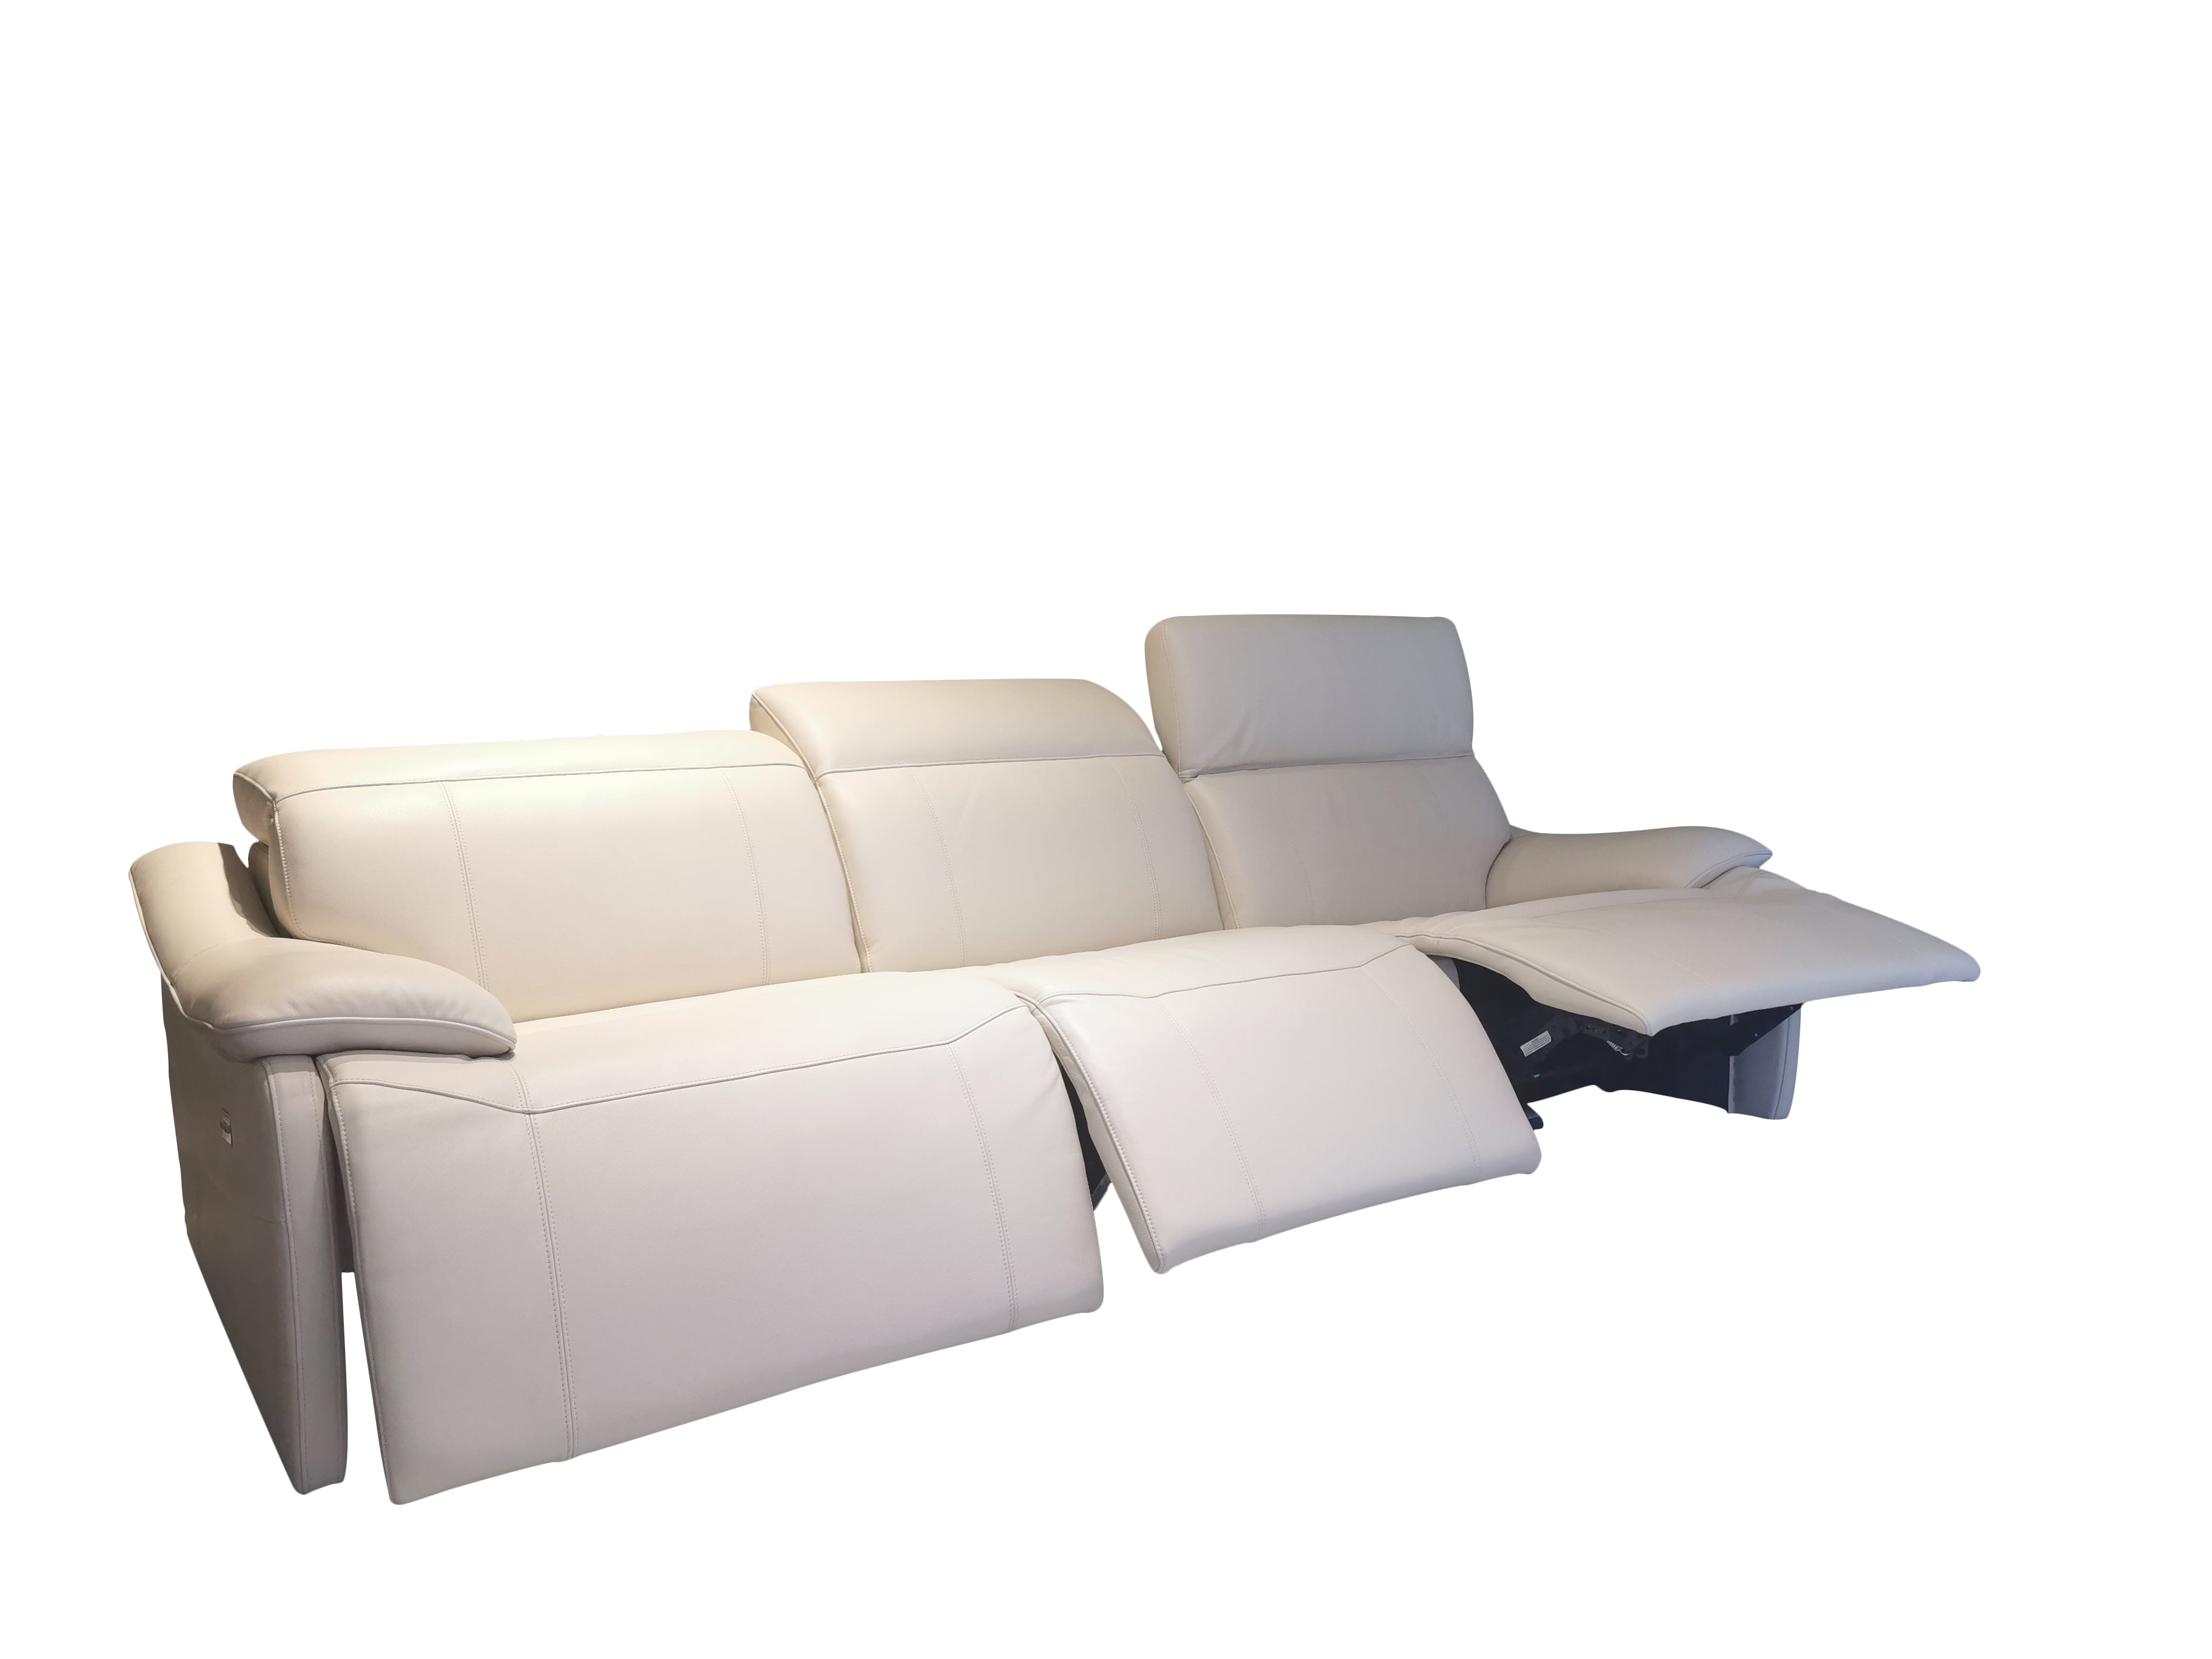 italian top grain leather sofa with 3 reclining seats